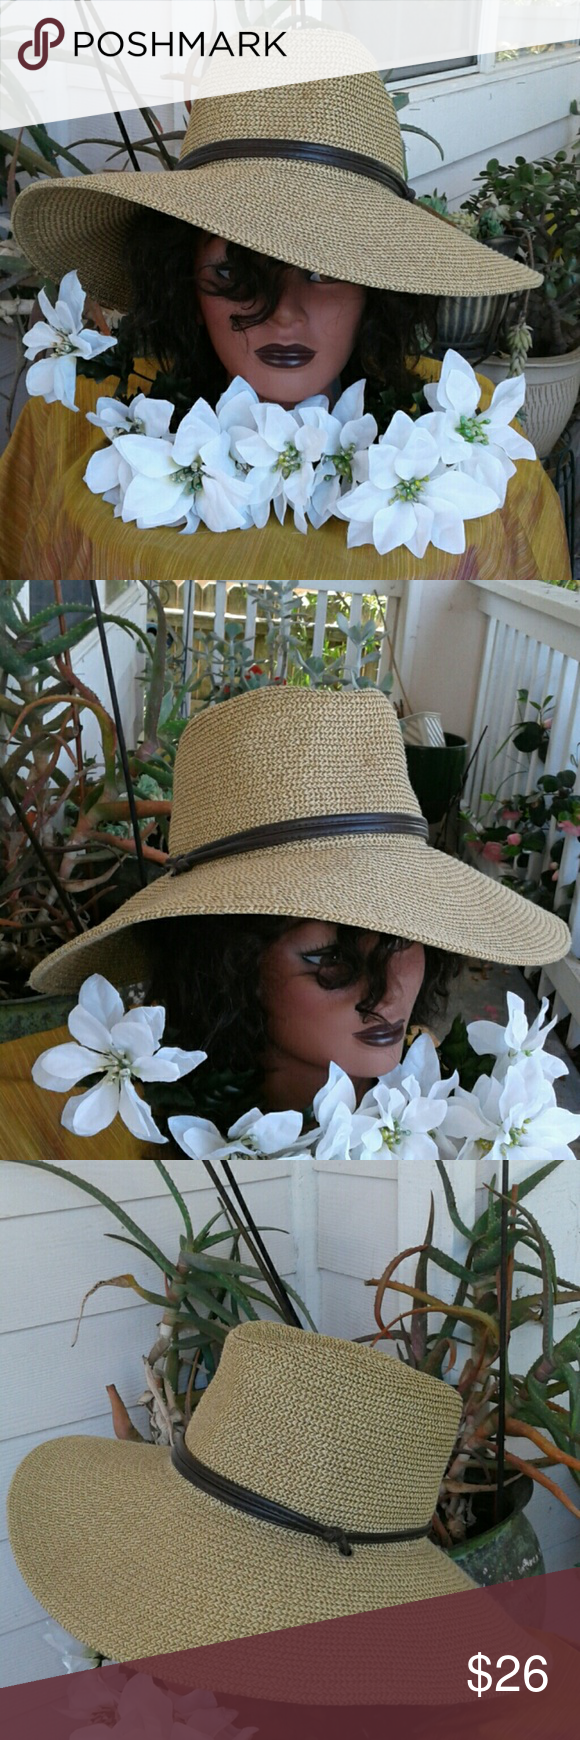 5a0a1a01c398d I just added this listing on Poshmark  ❤ GOLDCOAST SUNWEAR WIDE FLOPPY HAT.